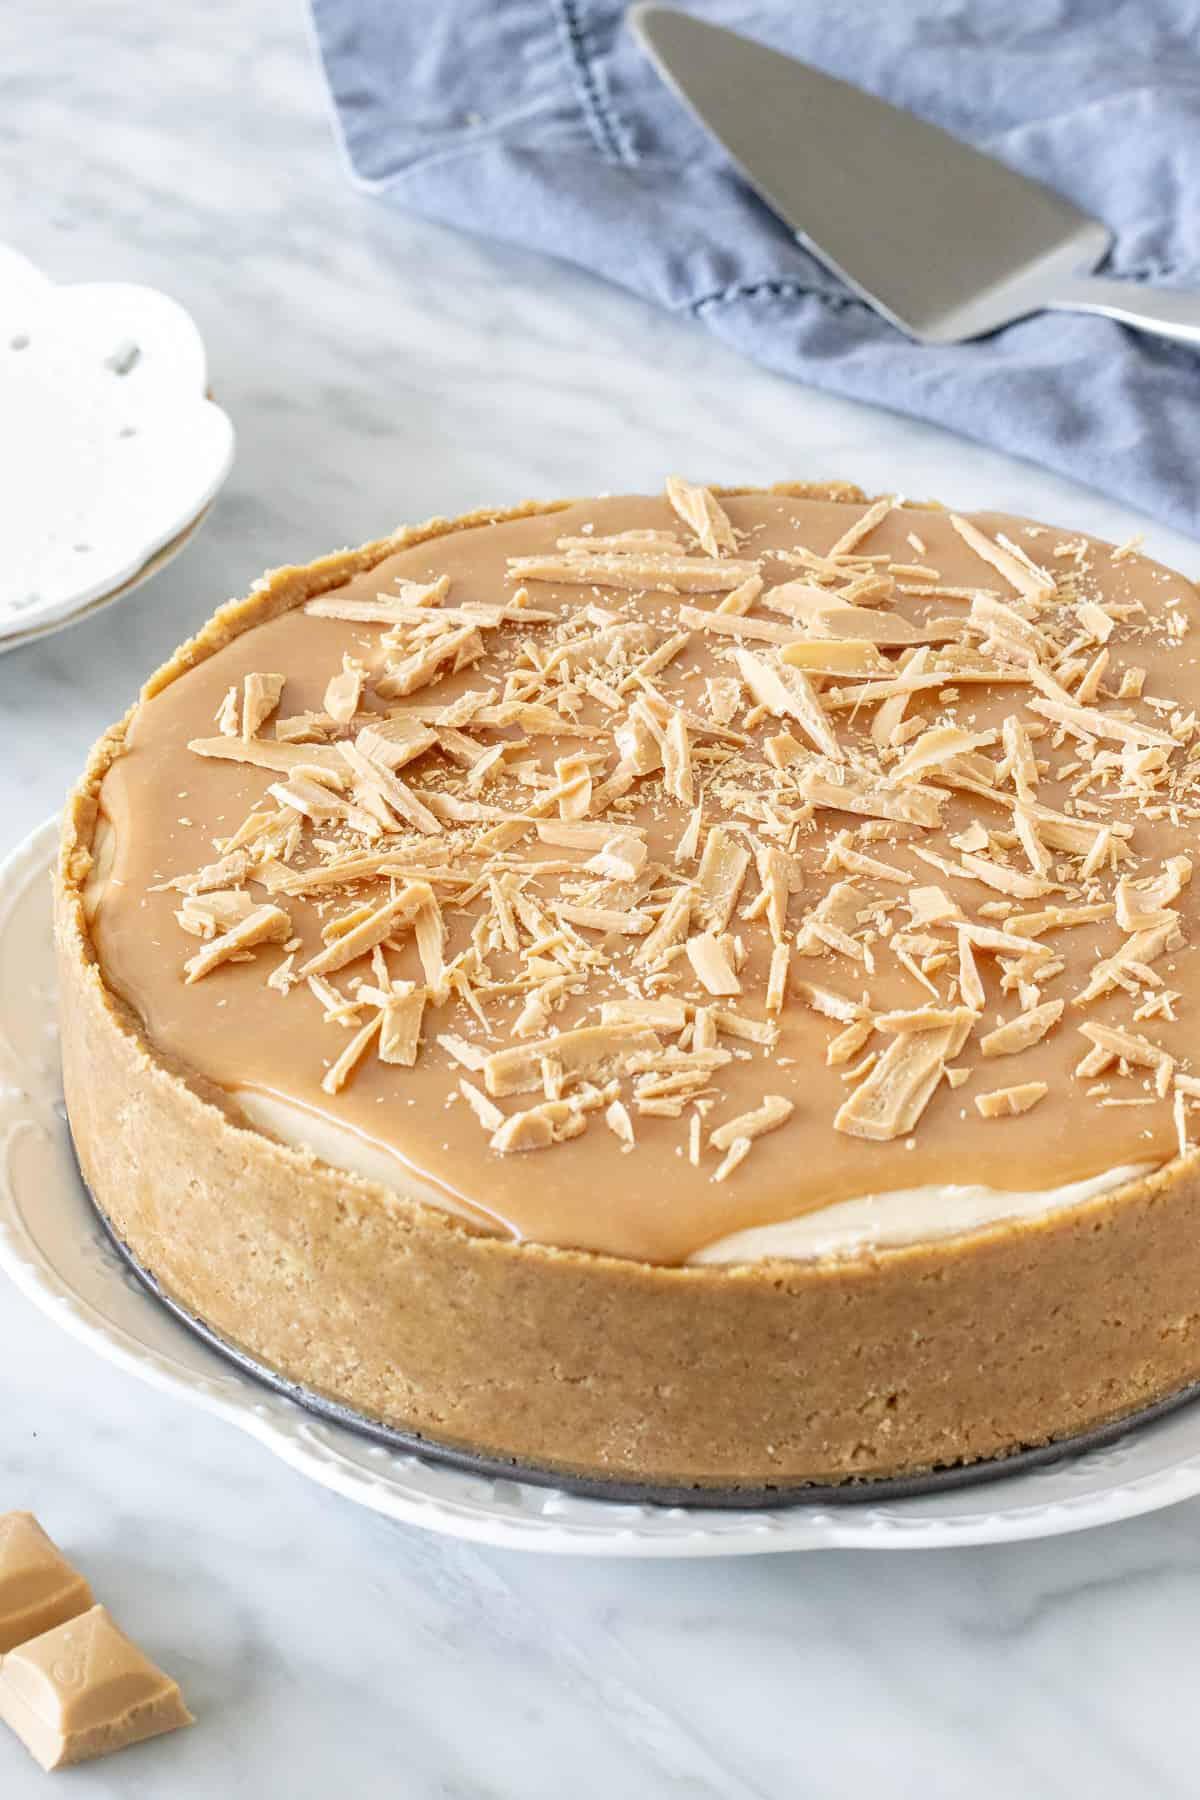 Caramilk cheesecake with biscuit crust and Caramilk topping.